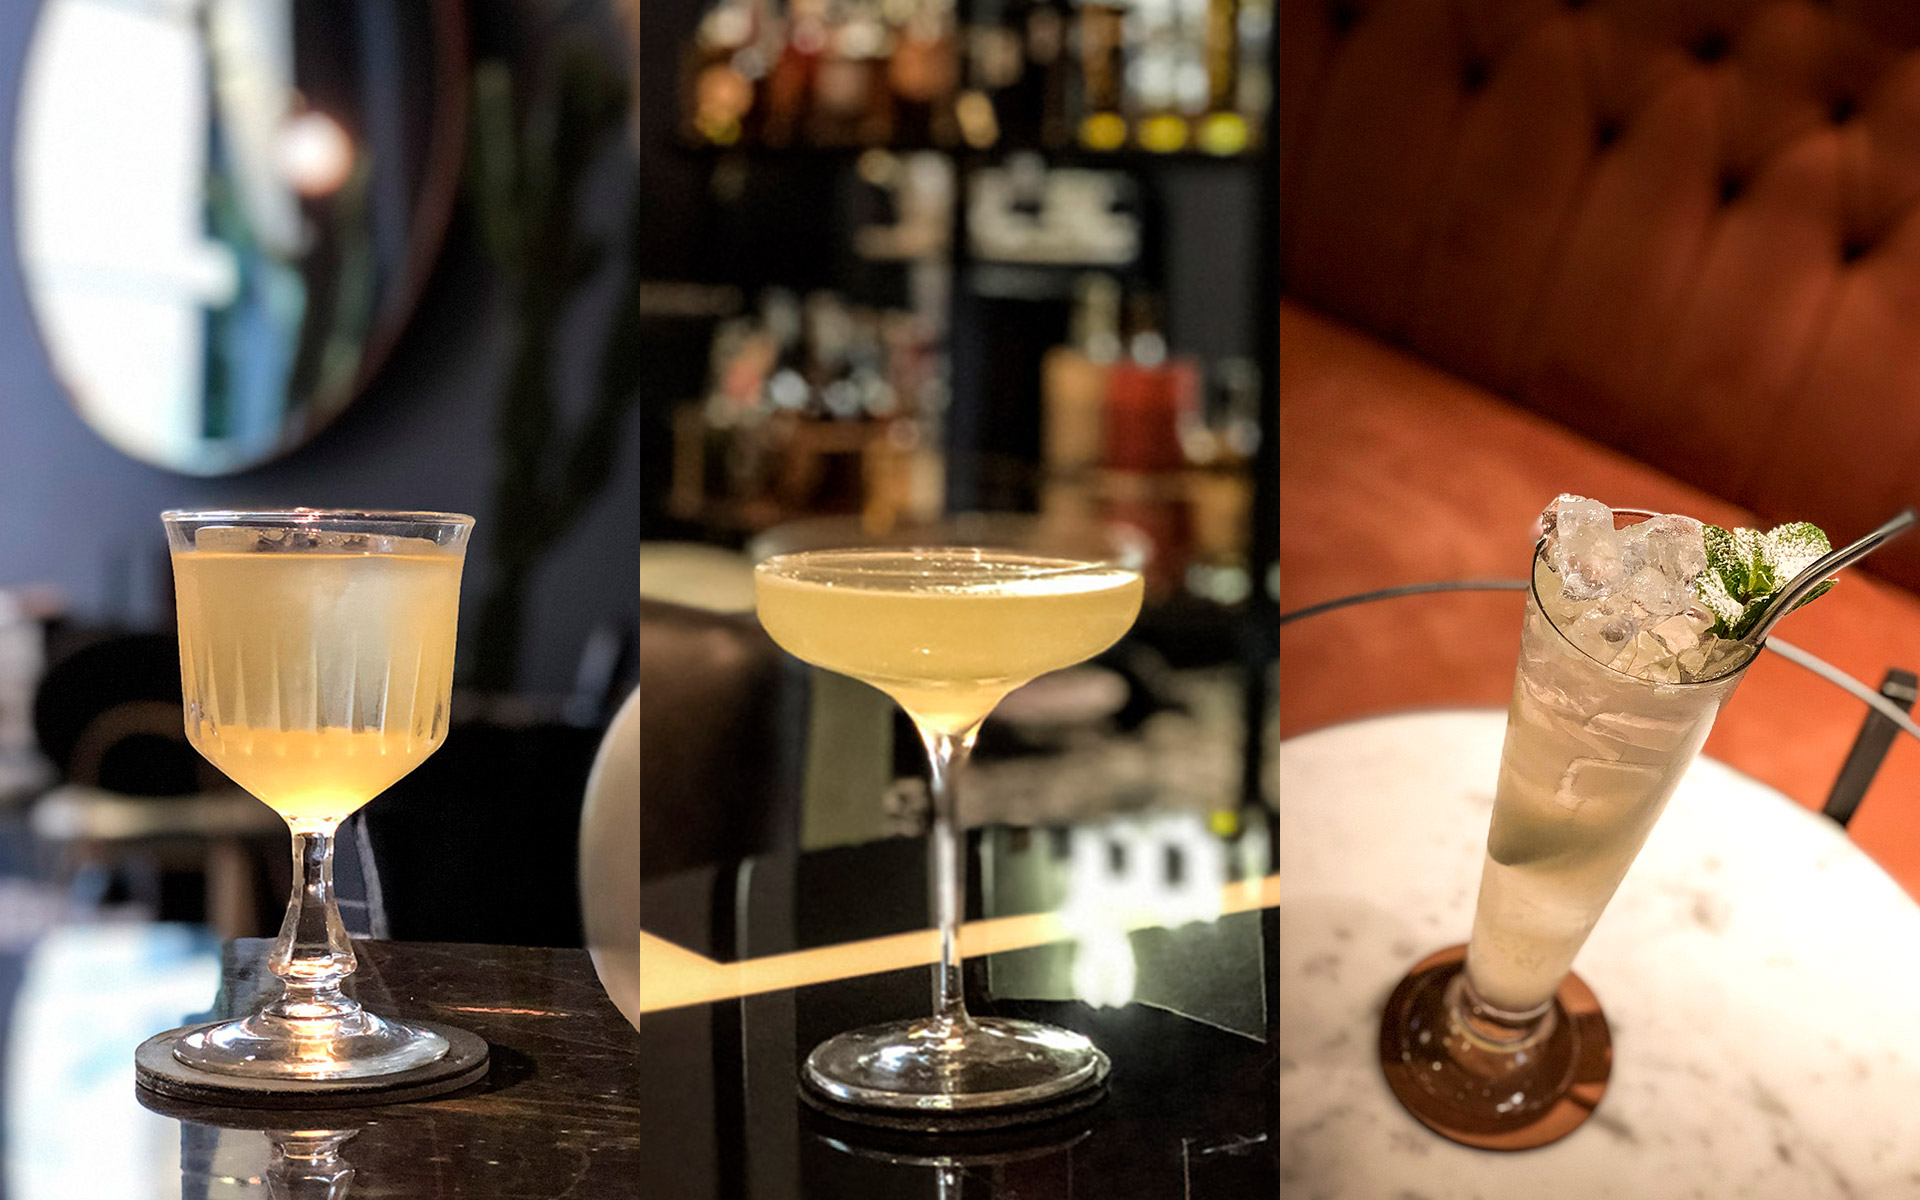 APPLE COCKTAILS ARE THE AUTUMN TREND AT THE BAXTER BAR